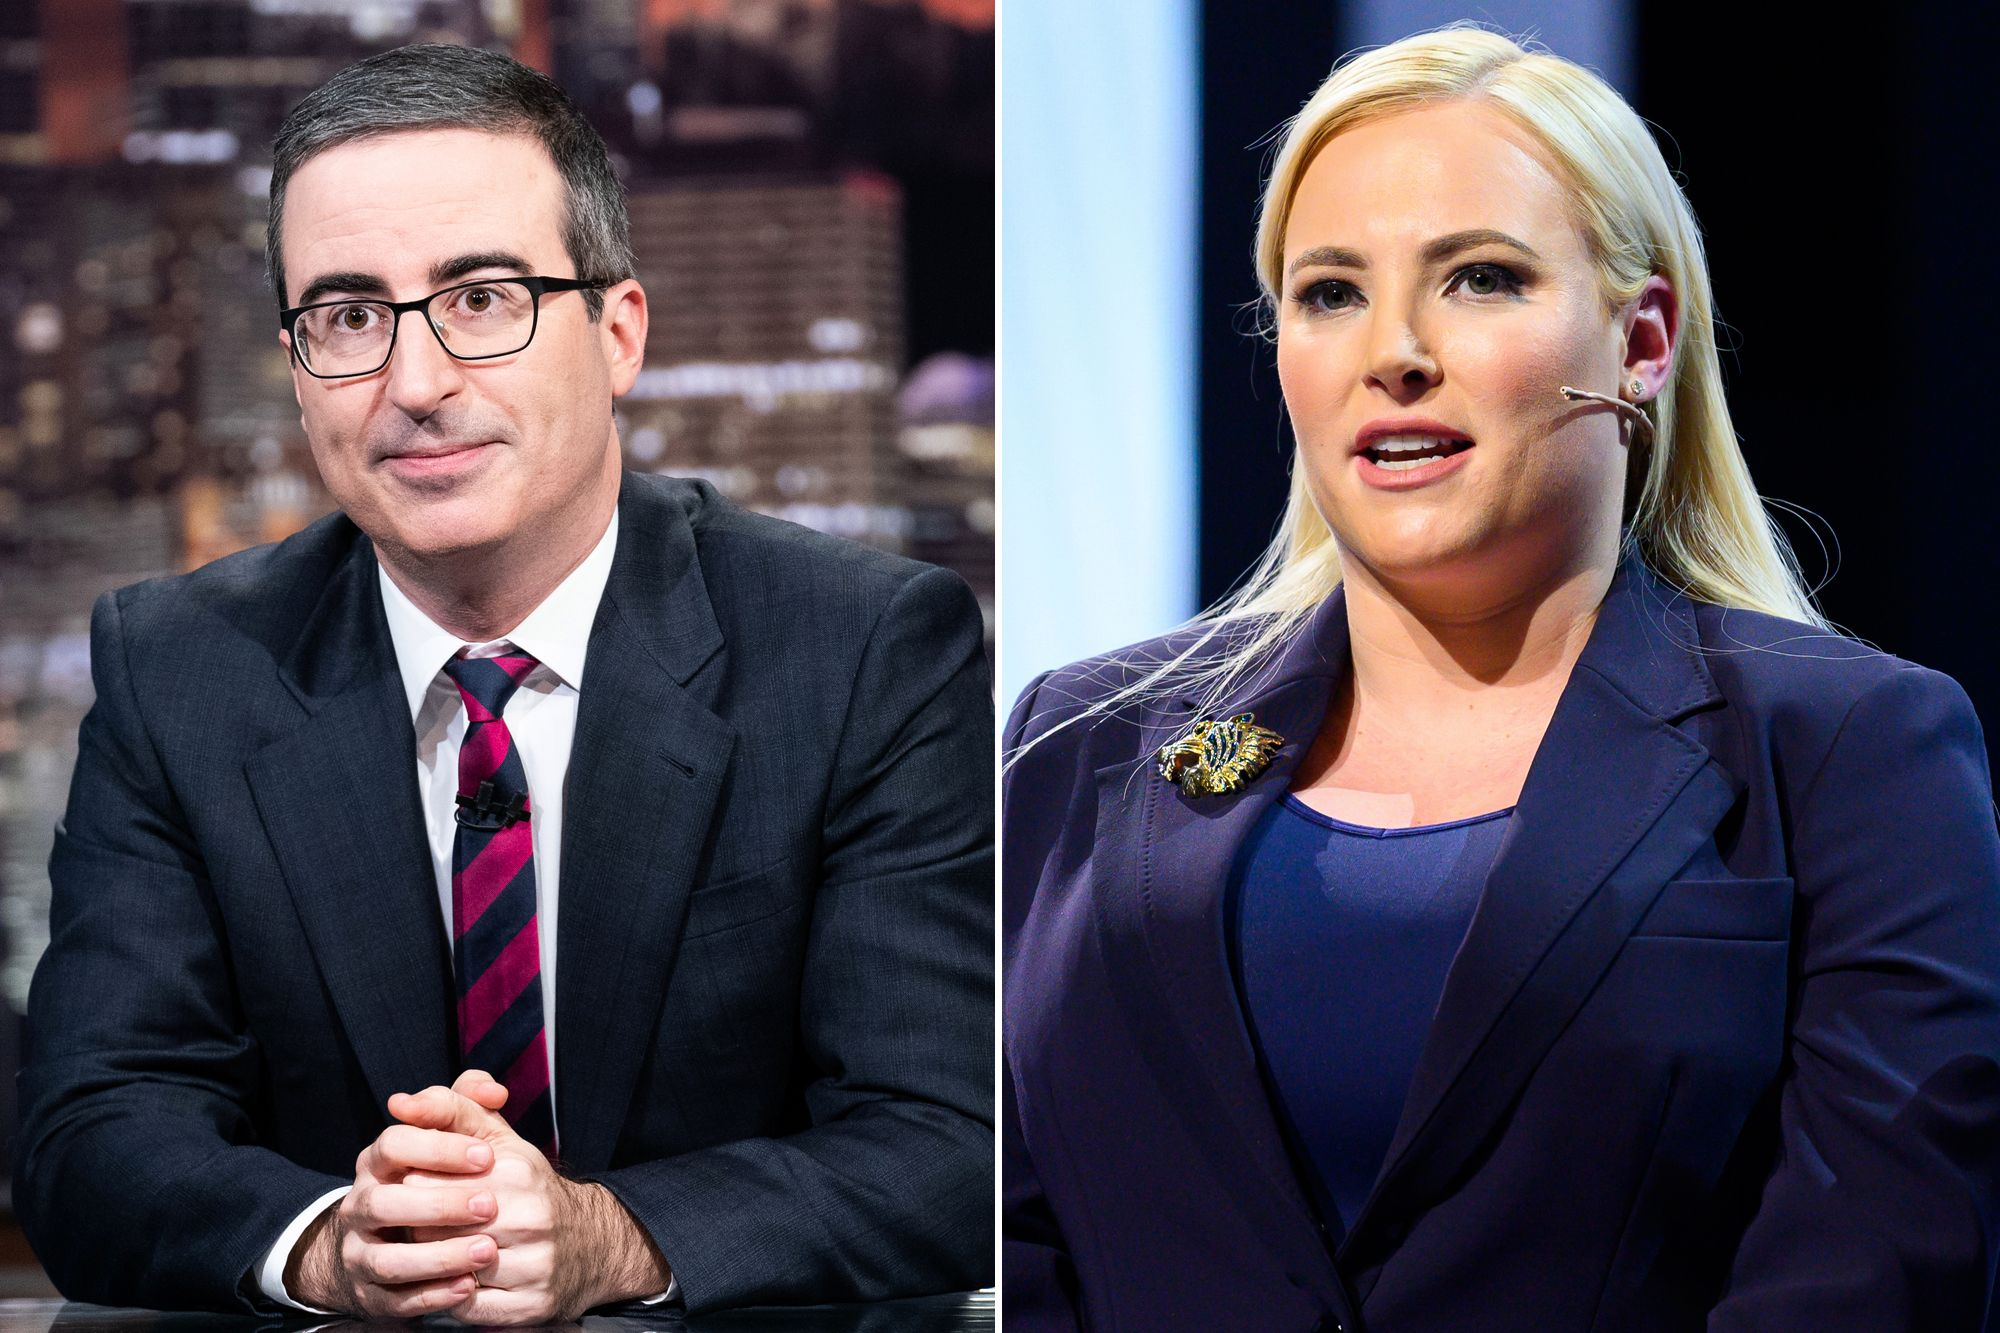 john-oliver-drags-meghan-mccain-after-calling-covid-19-the-china-virus-and-she-apologizes-as-a-result